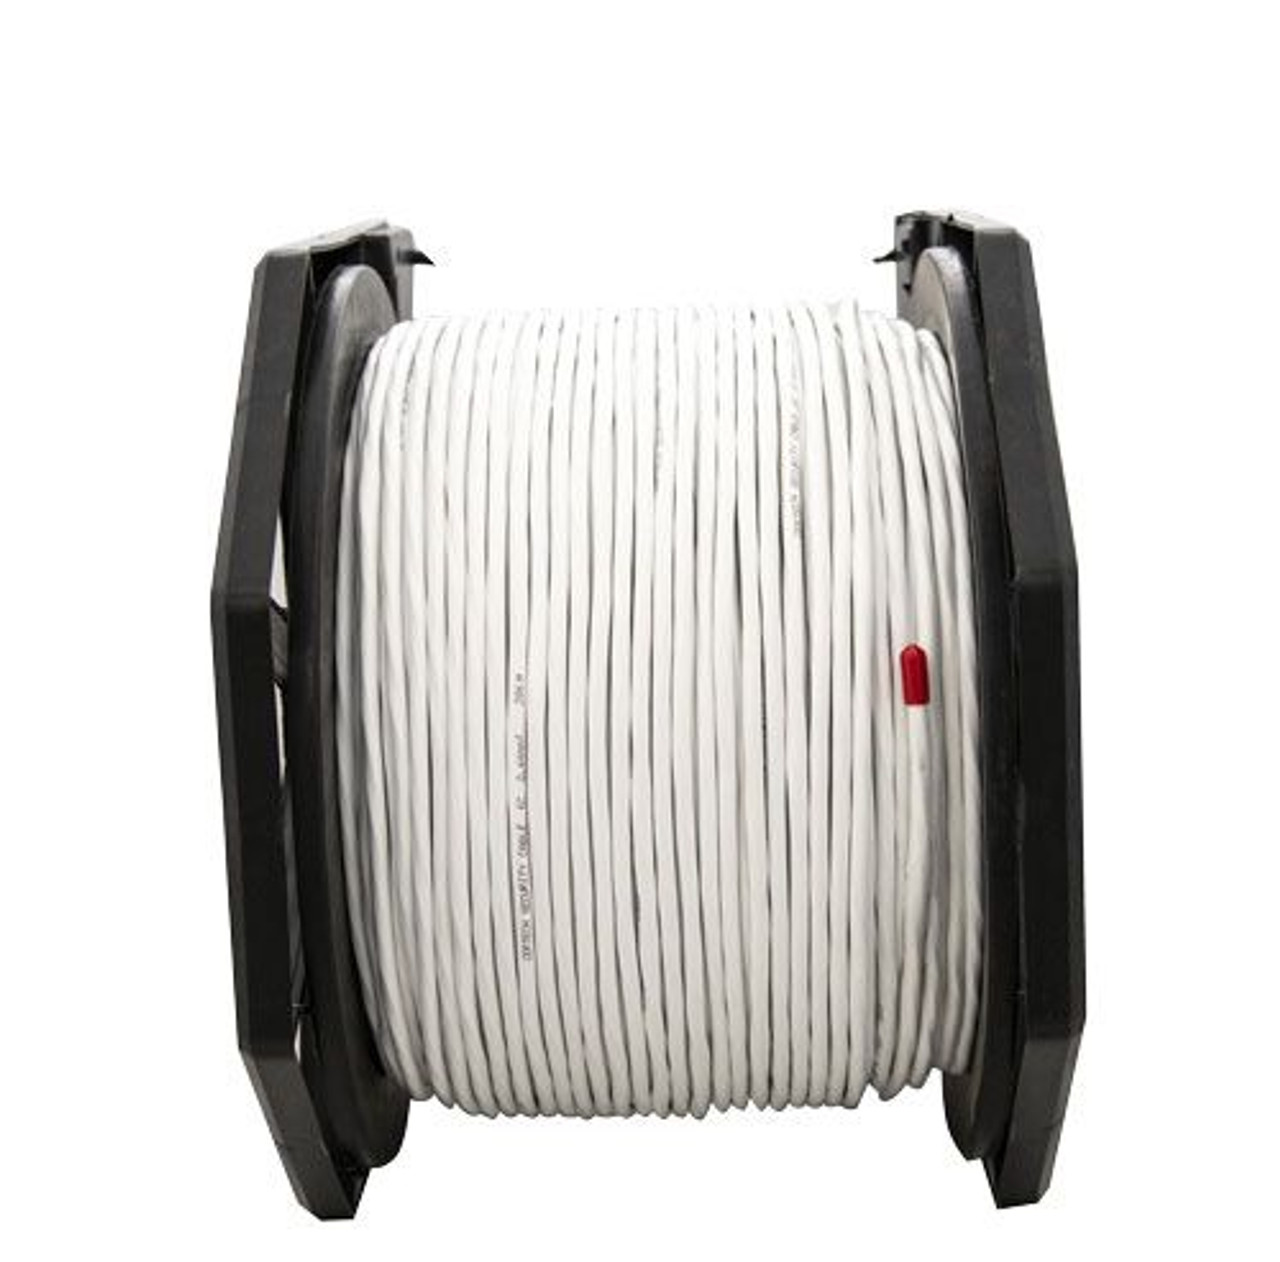 4Cabling 6 Core 14/020 Shielded, 200m Security Cable - White - LSZH